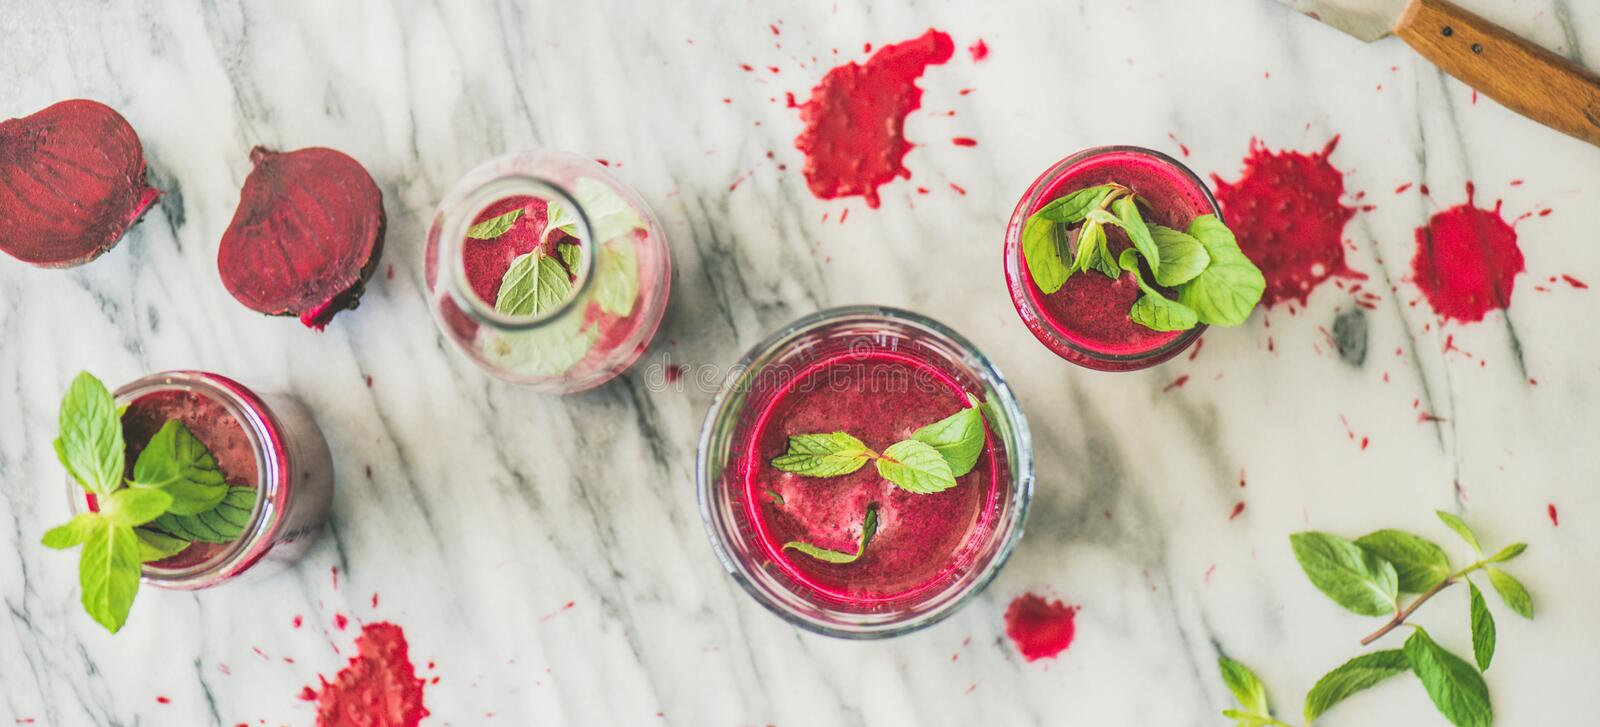 Fresh morning beetroot smoothie or juice in glasses, marble background royalty free stock image